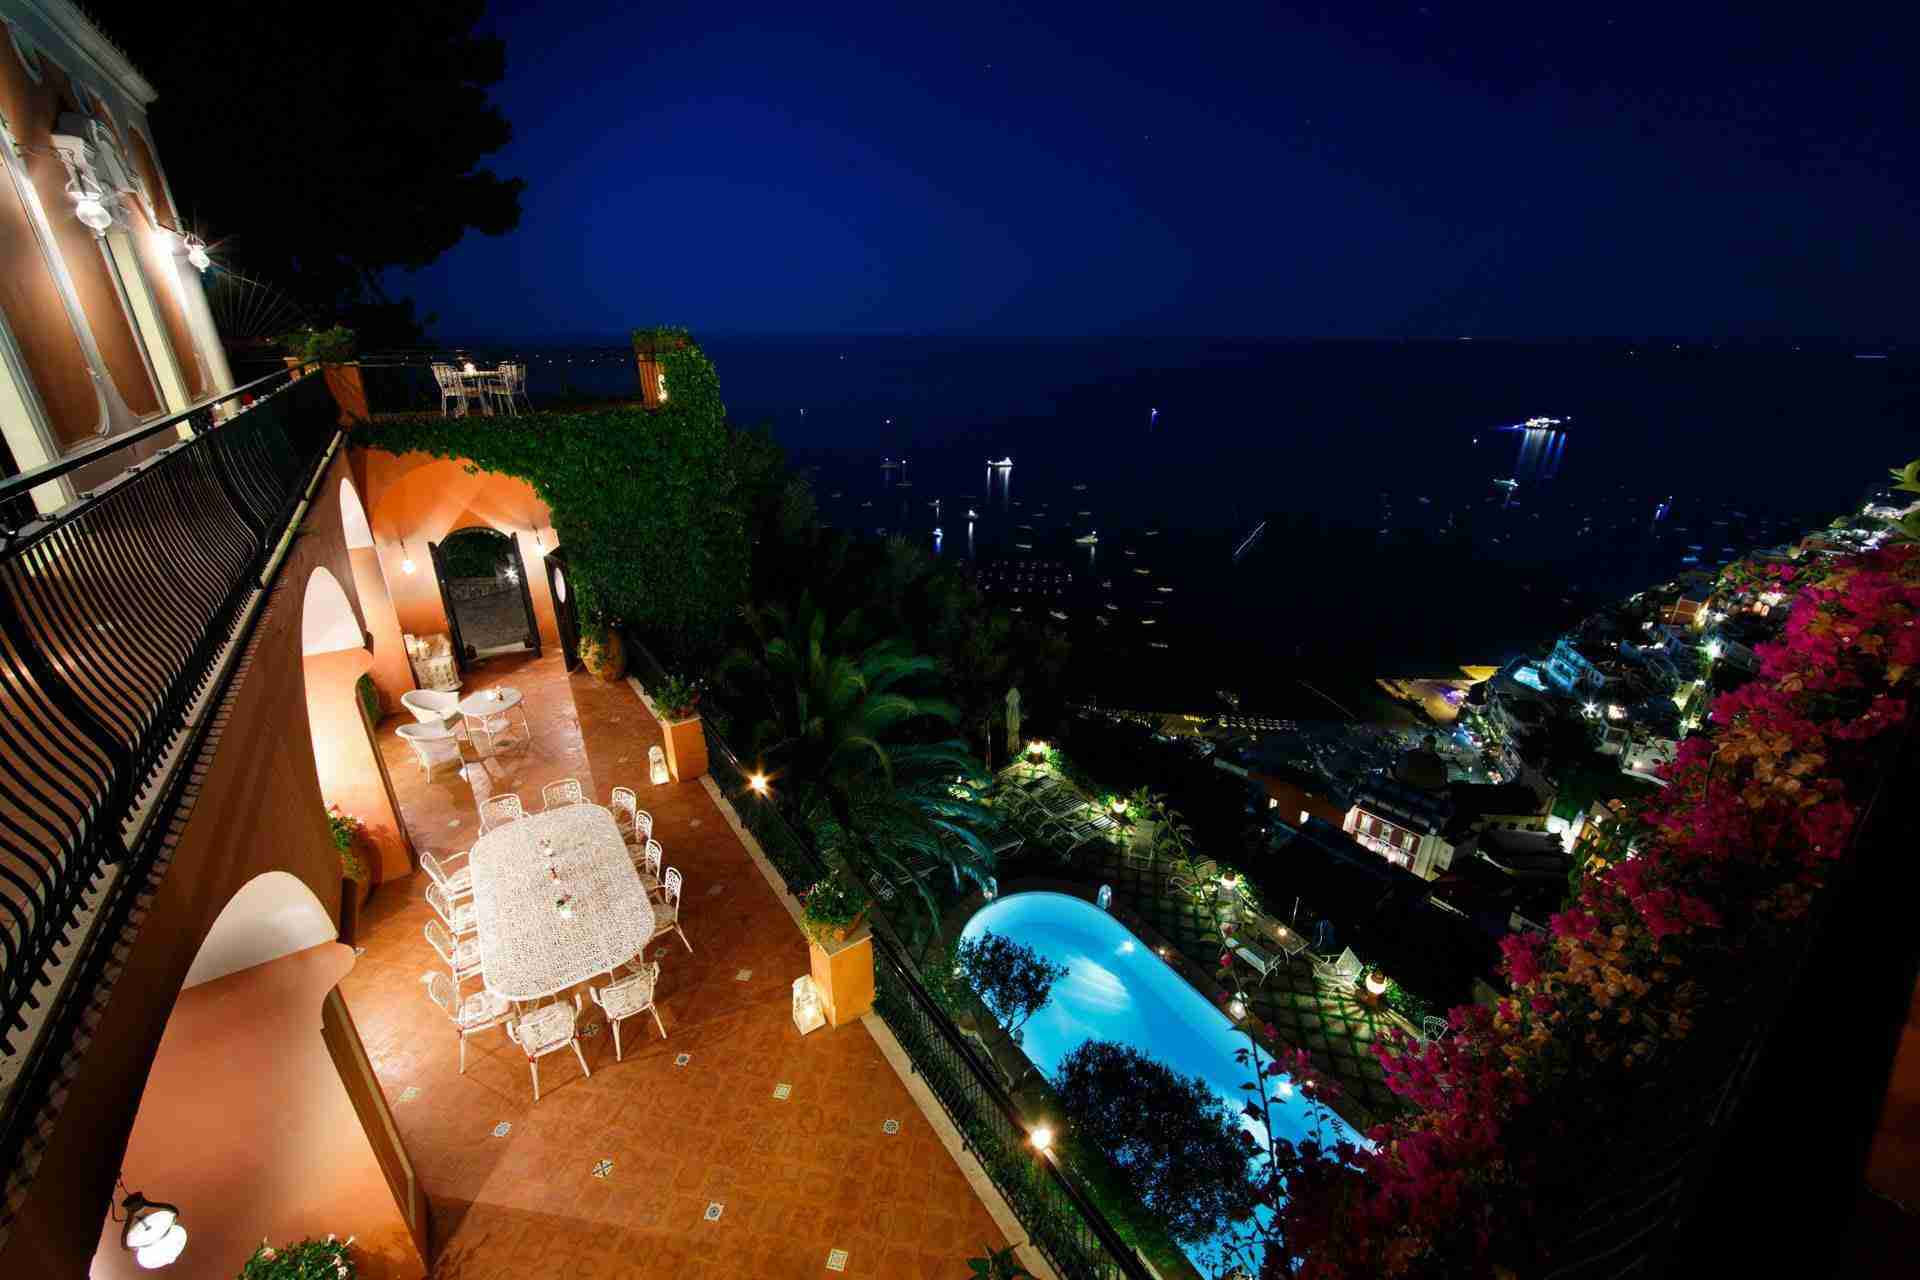 32 Positano night view